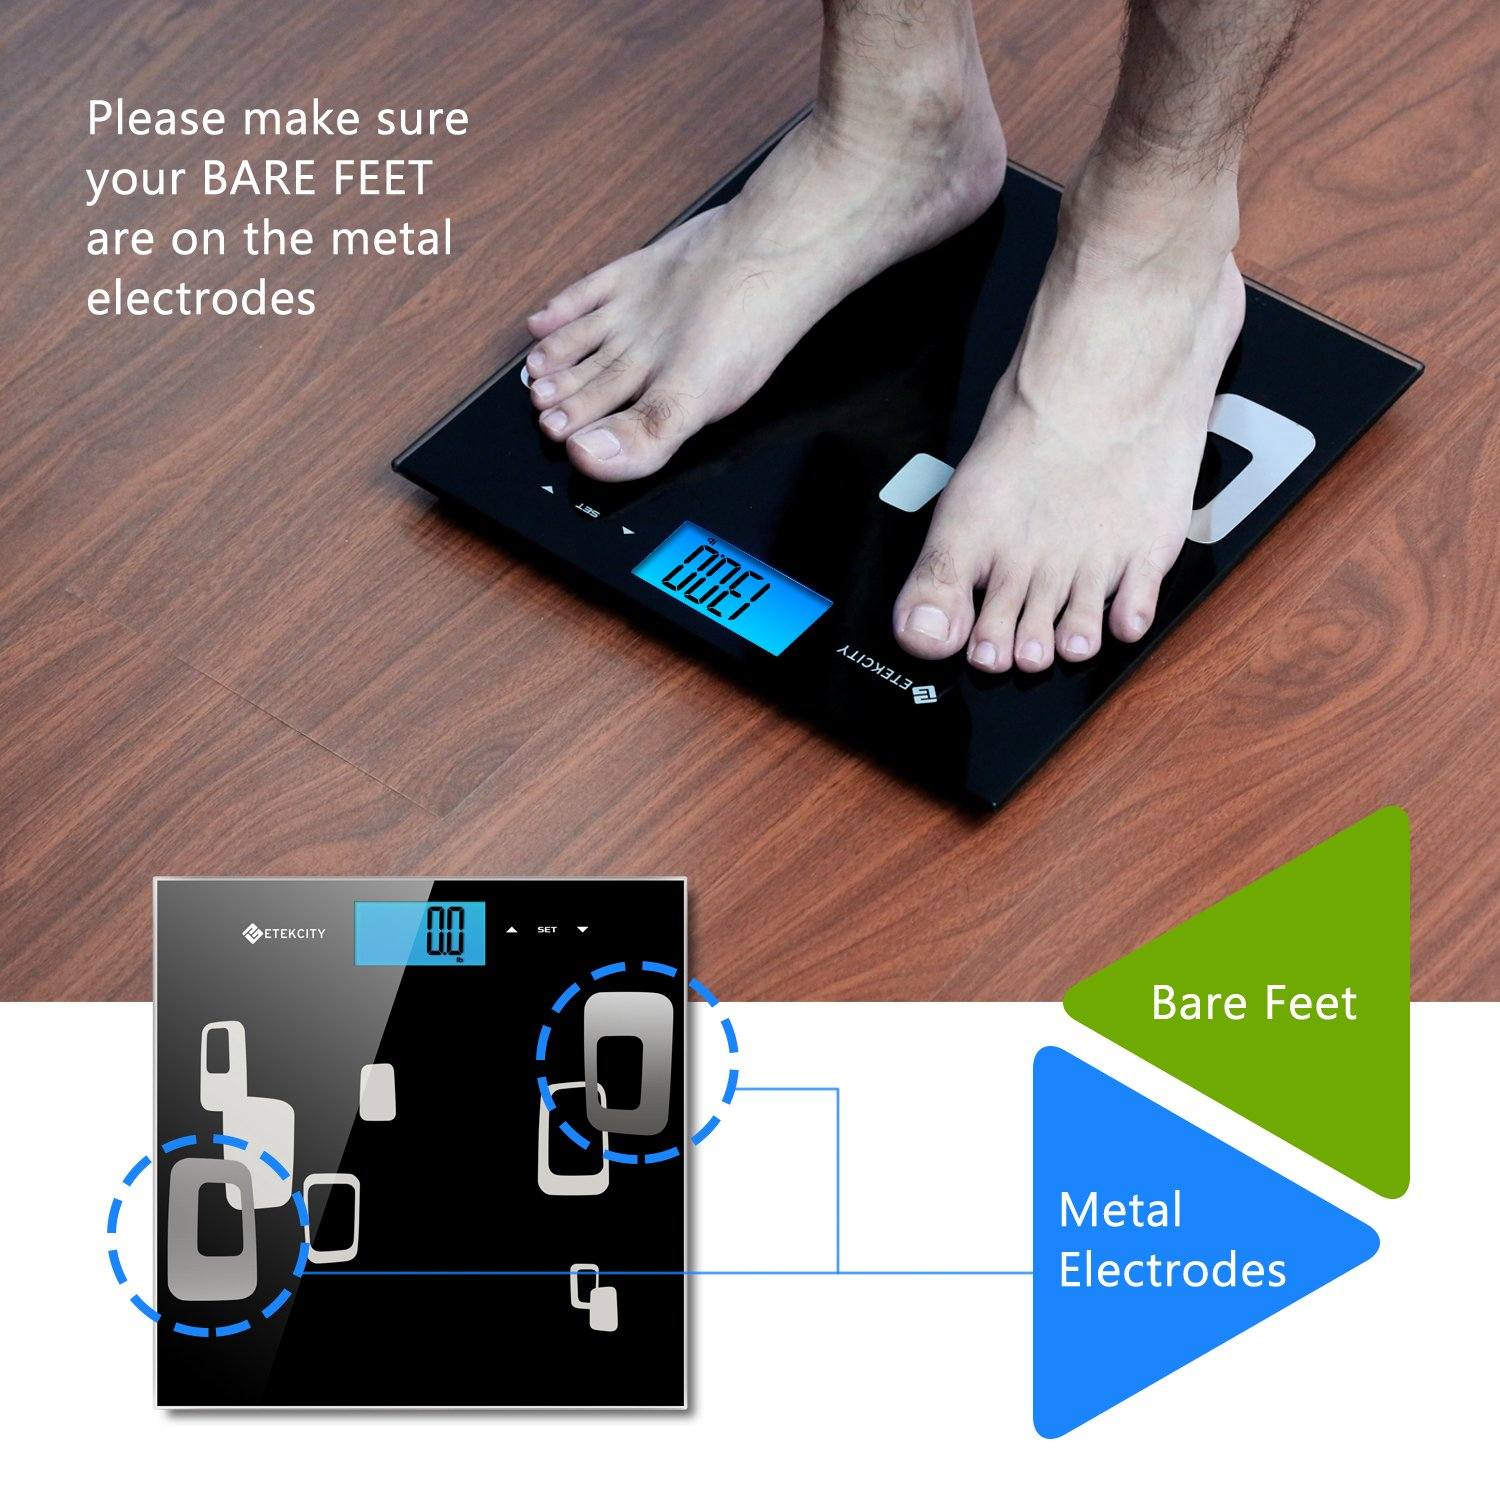 Amazoncom Etekcity Digital Body Weight Scale High Precision - Large display digital bathroom scales for bathroom decor ideas